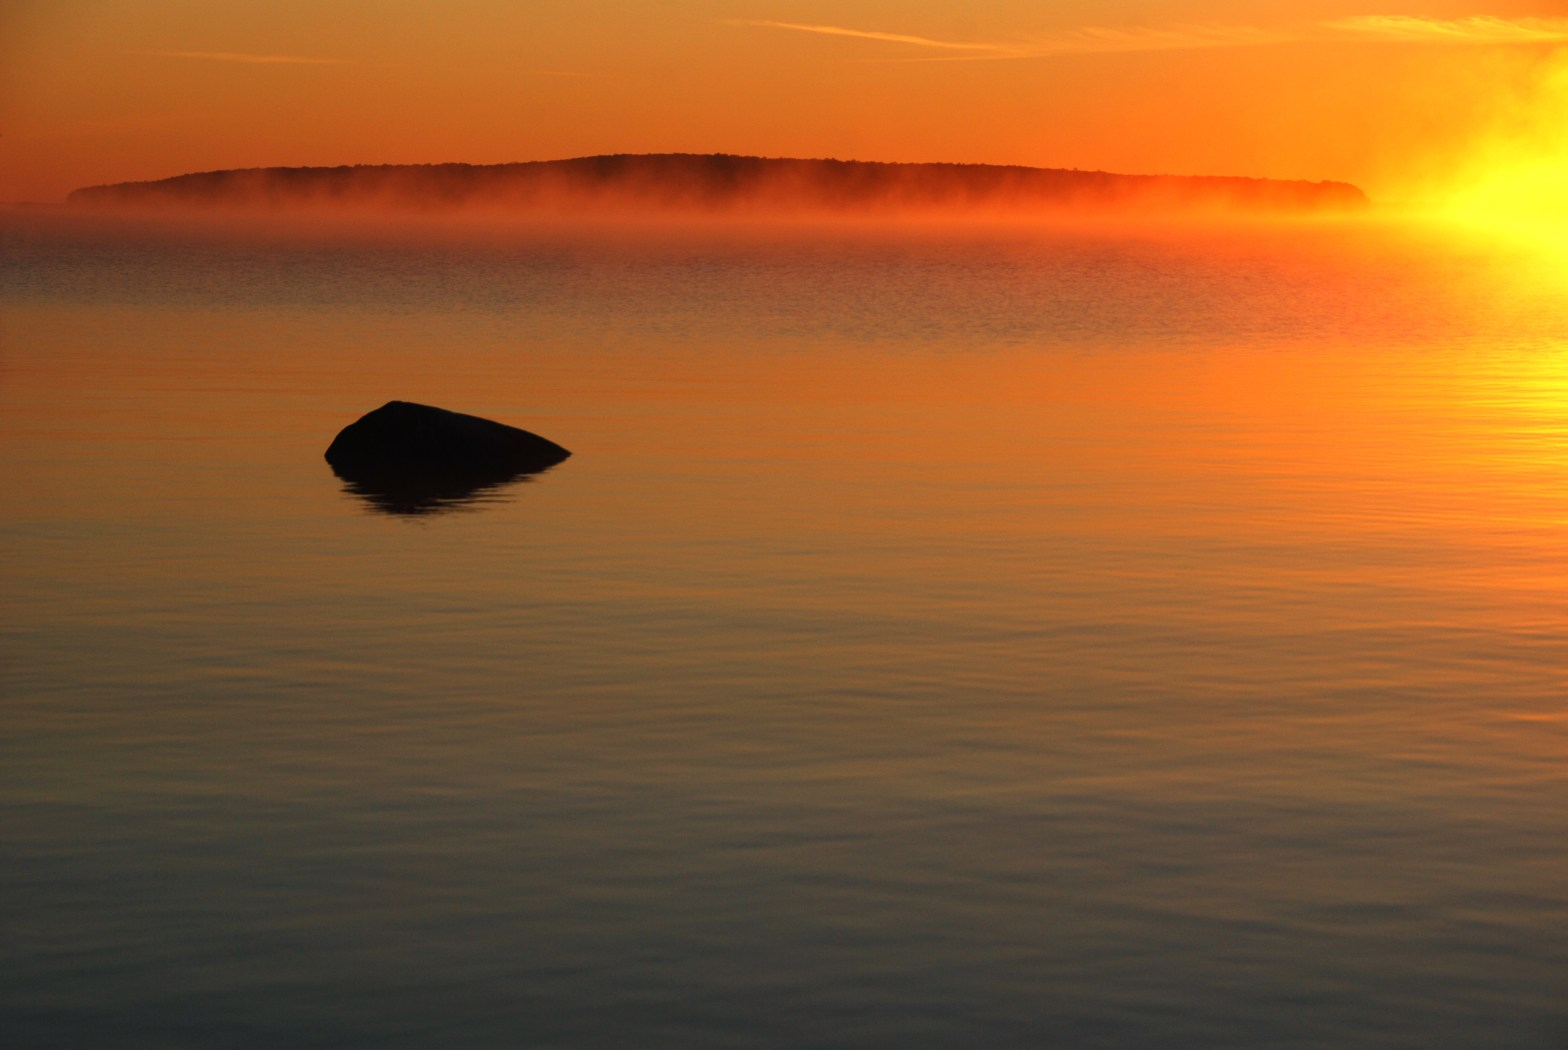 Lone rock in foreground, island in the mist